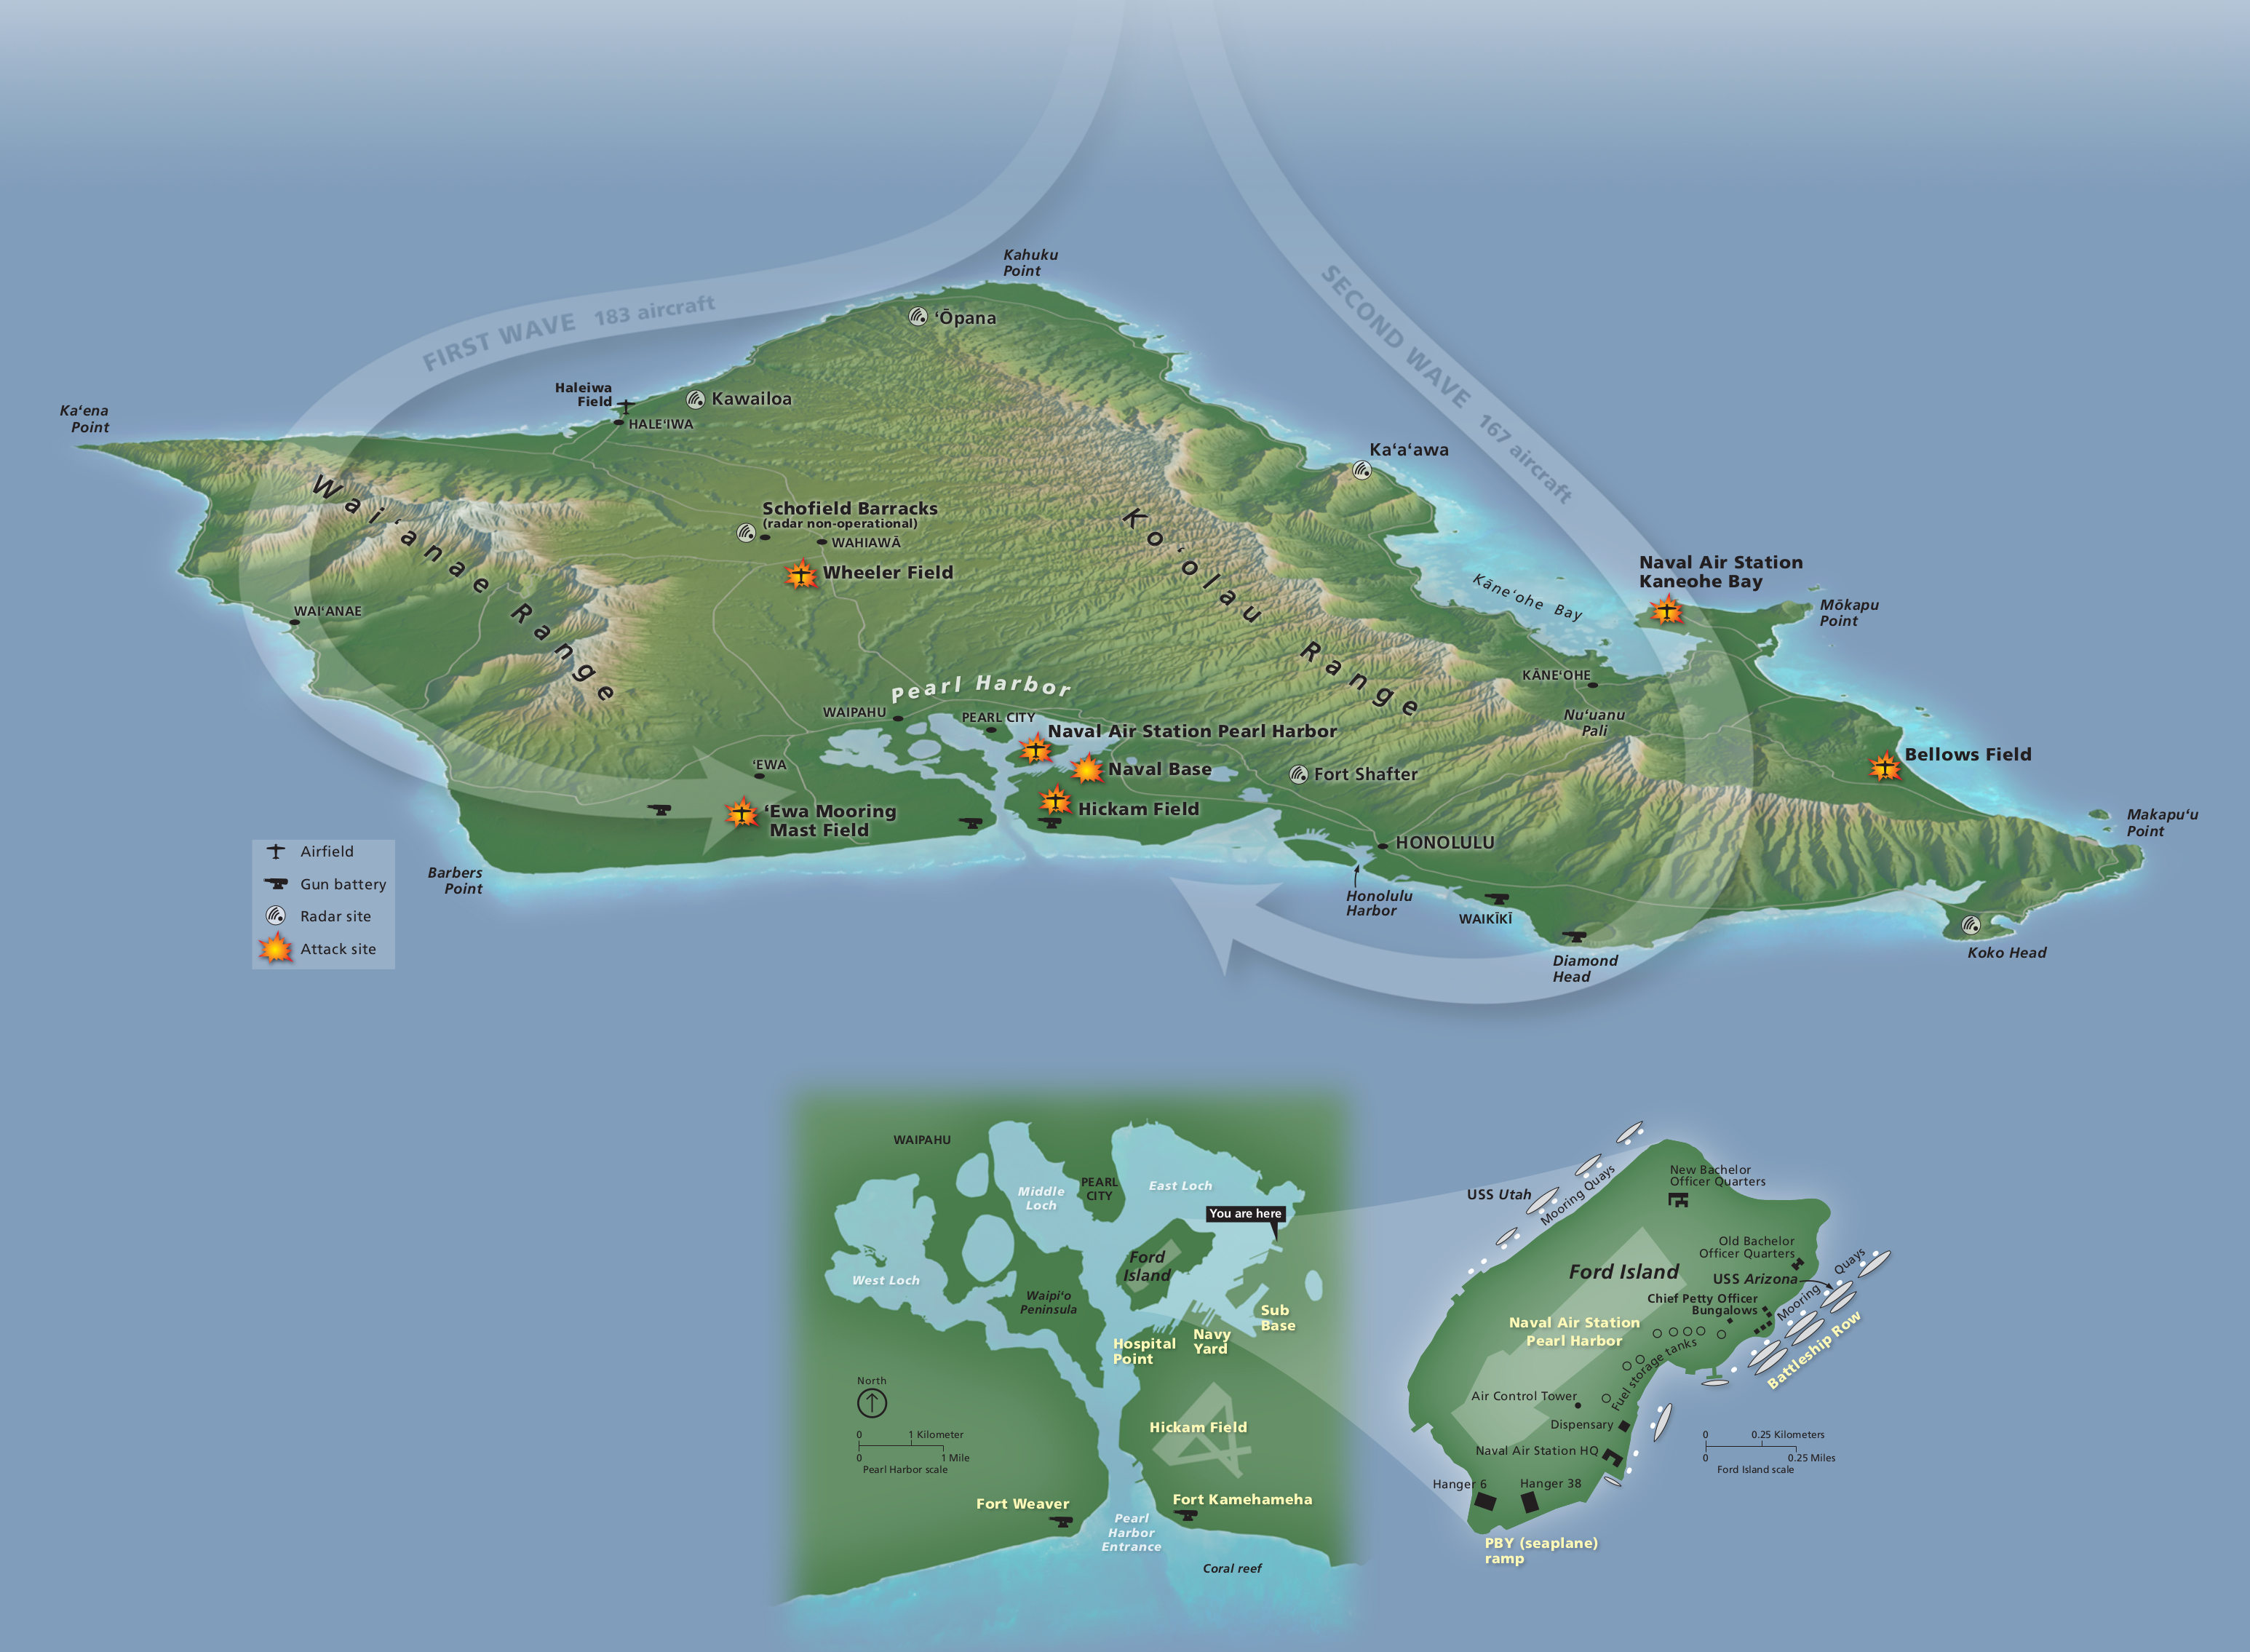 Map Of Pearl Harbor Pearl Harbor Maps   NPMaps.  just free maps, period.